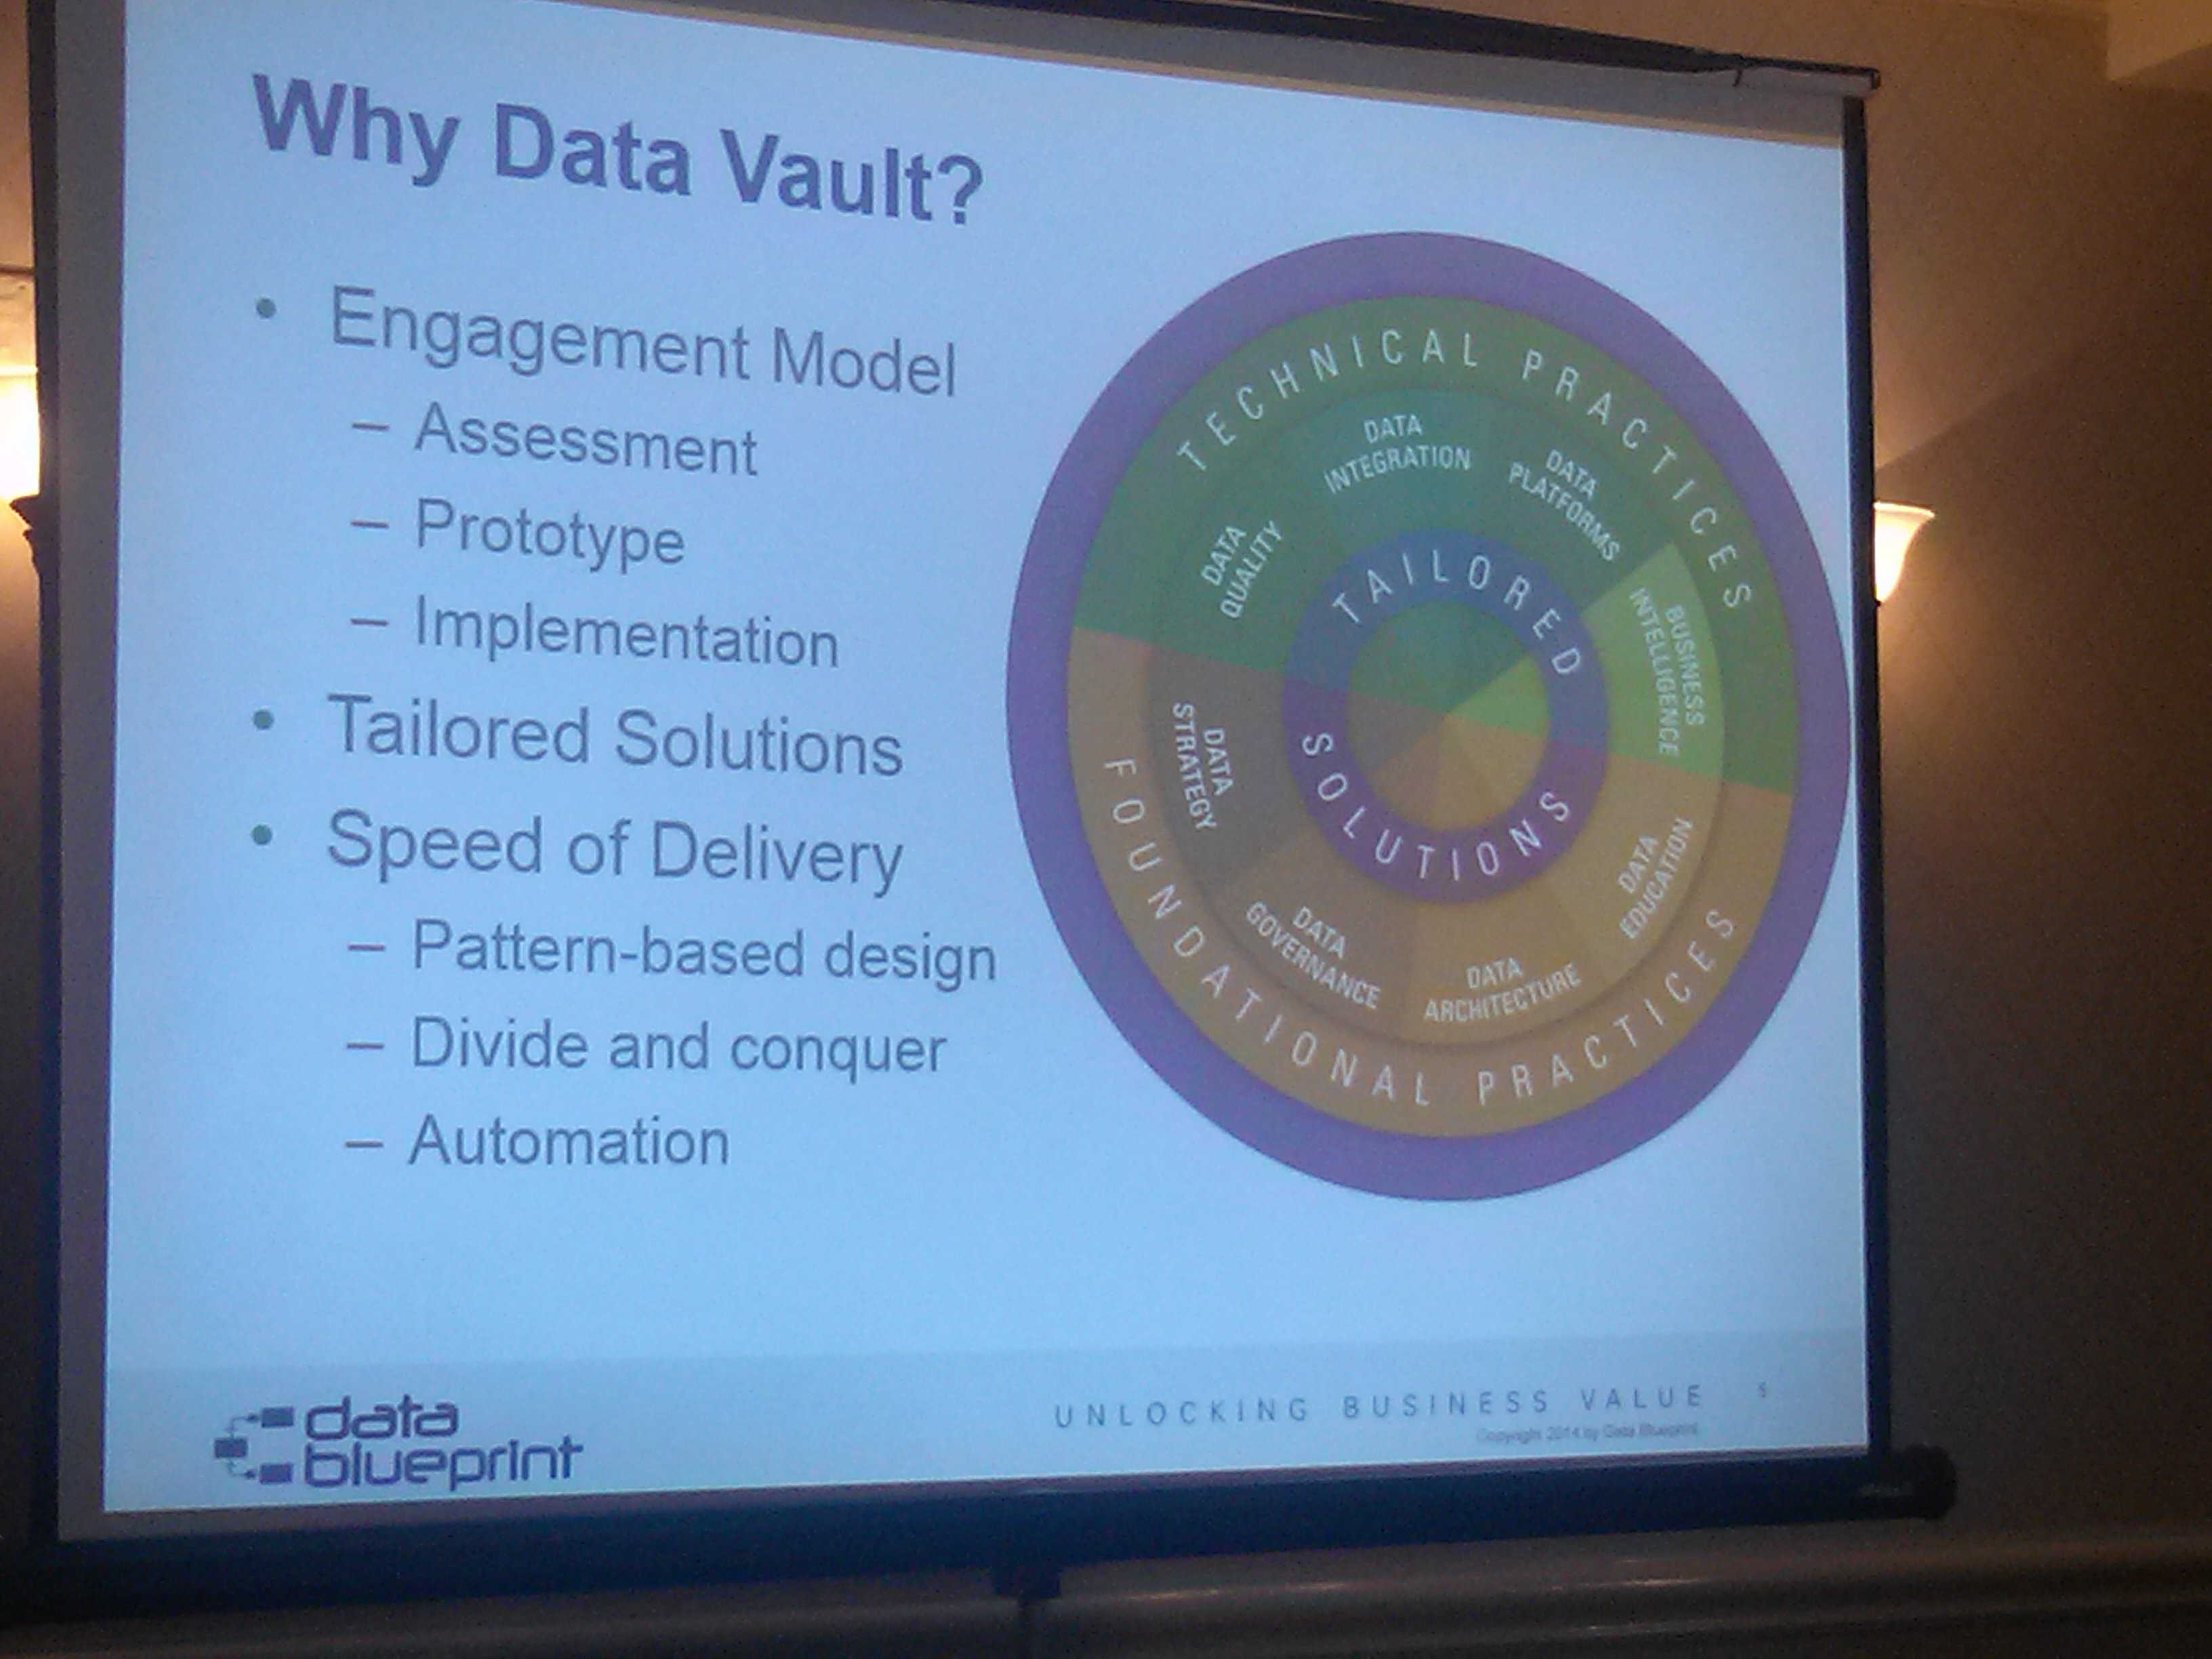 Why Data Blueprint decided to use DV as their consulting